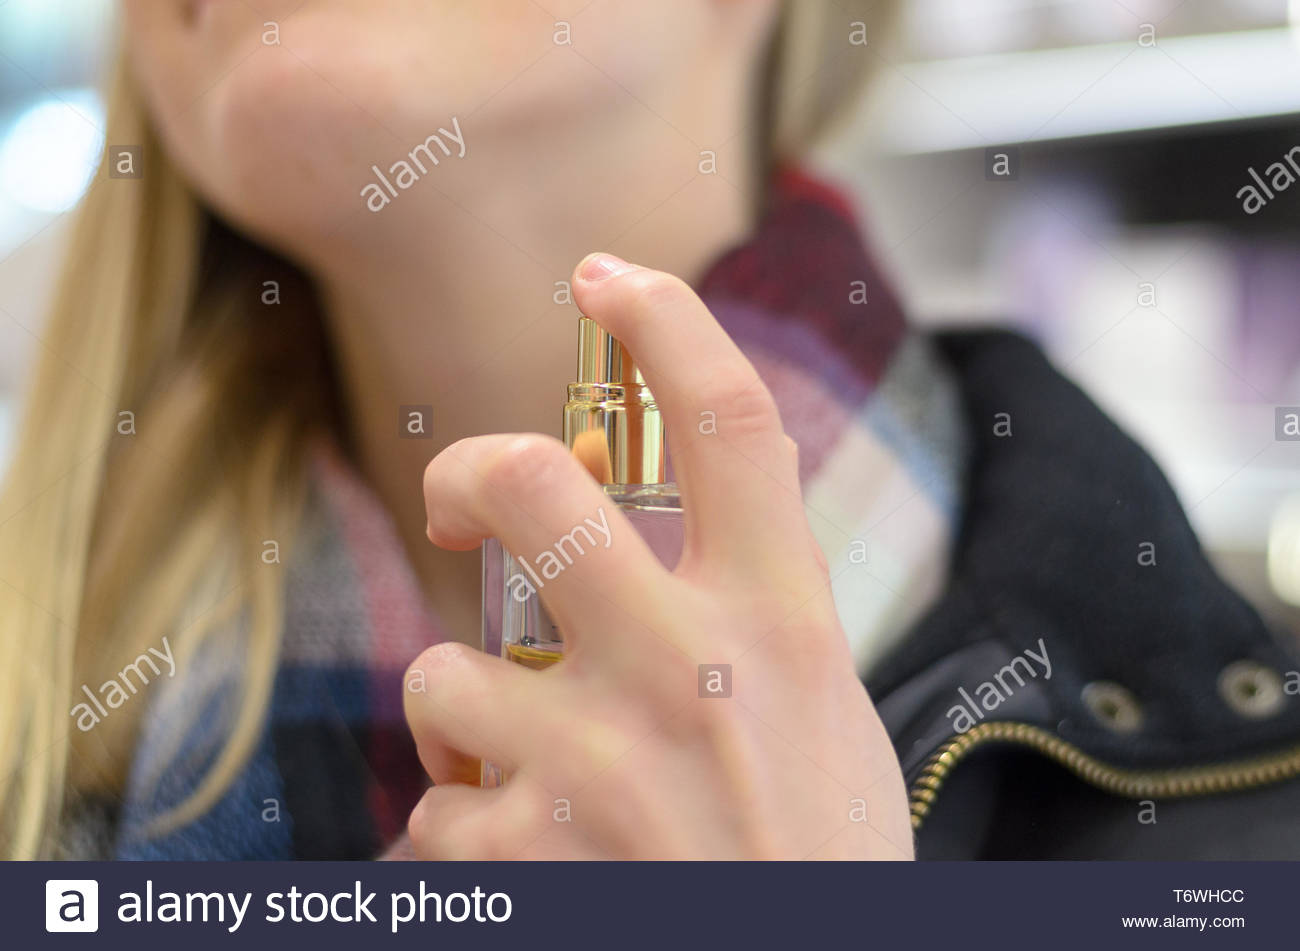 Young woman spraying her neck with perfume - Stock Image